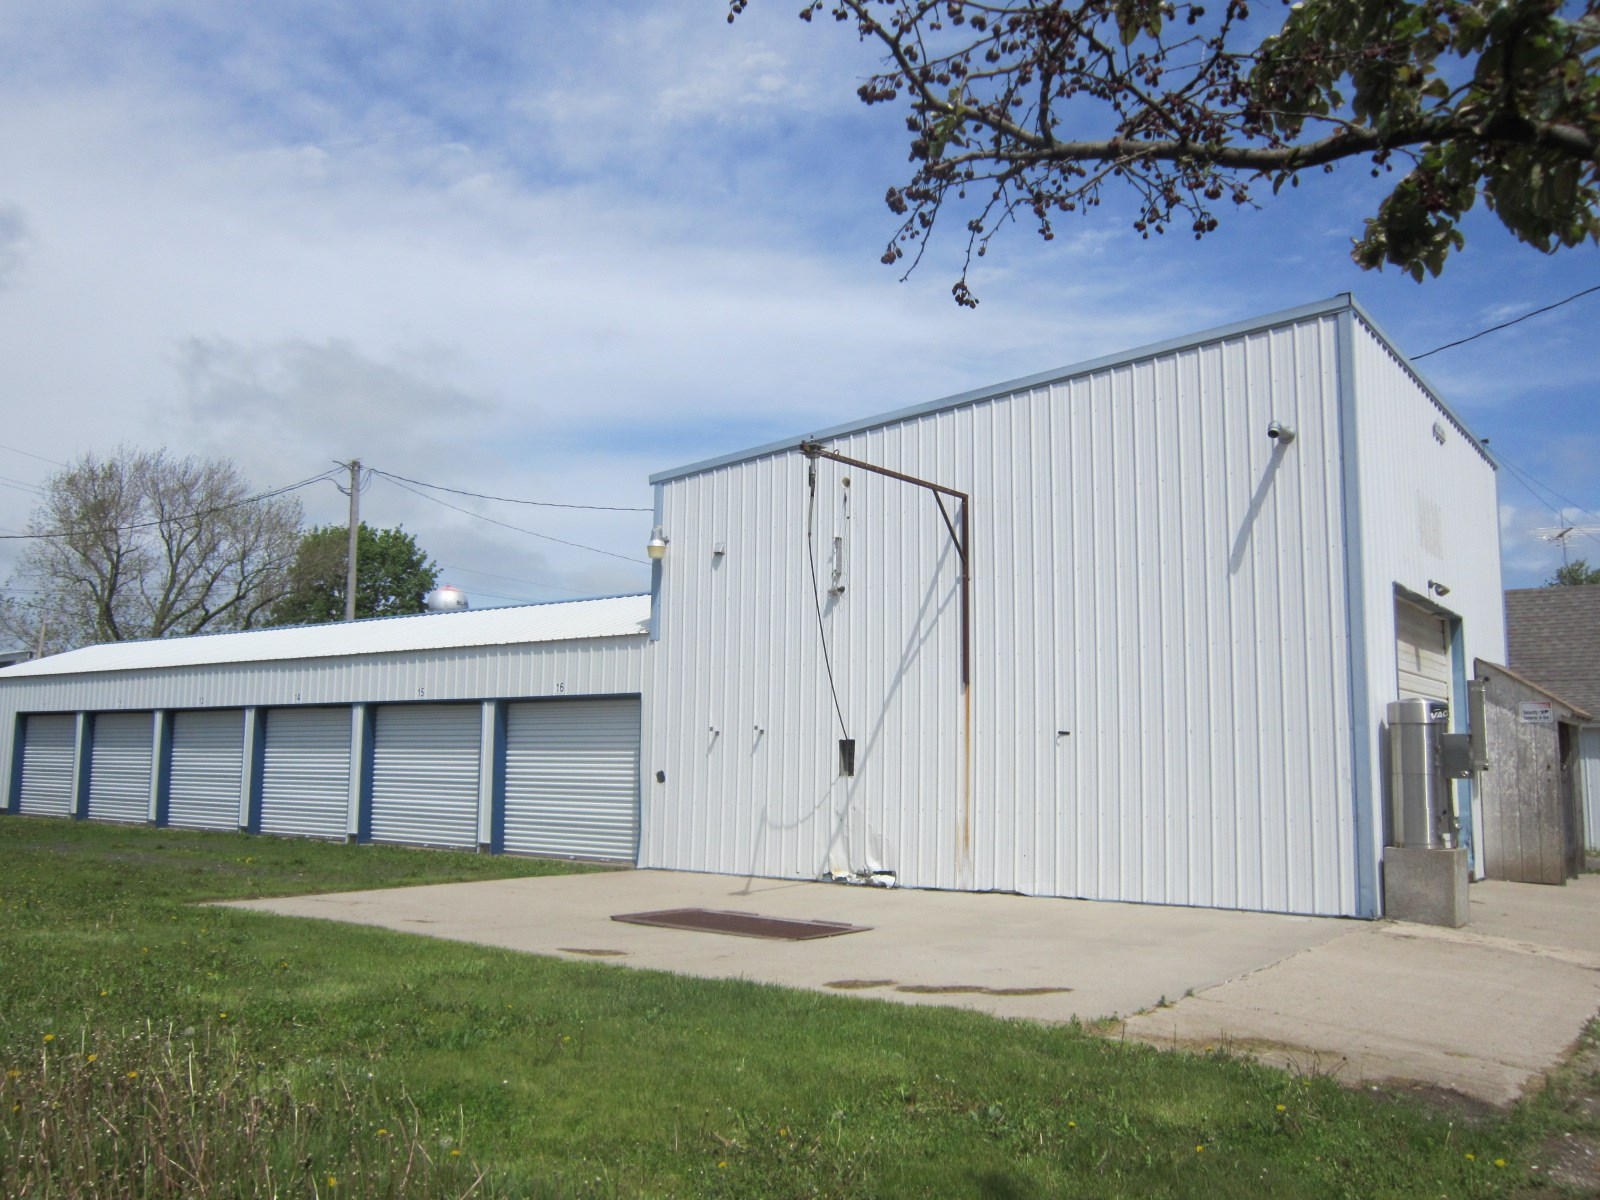 Commercial Property for Sale, Blakesburg, IA